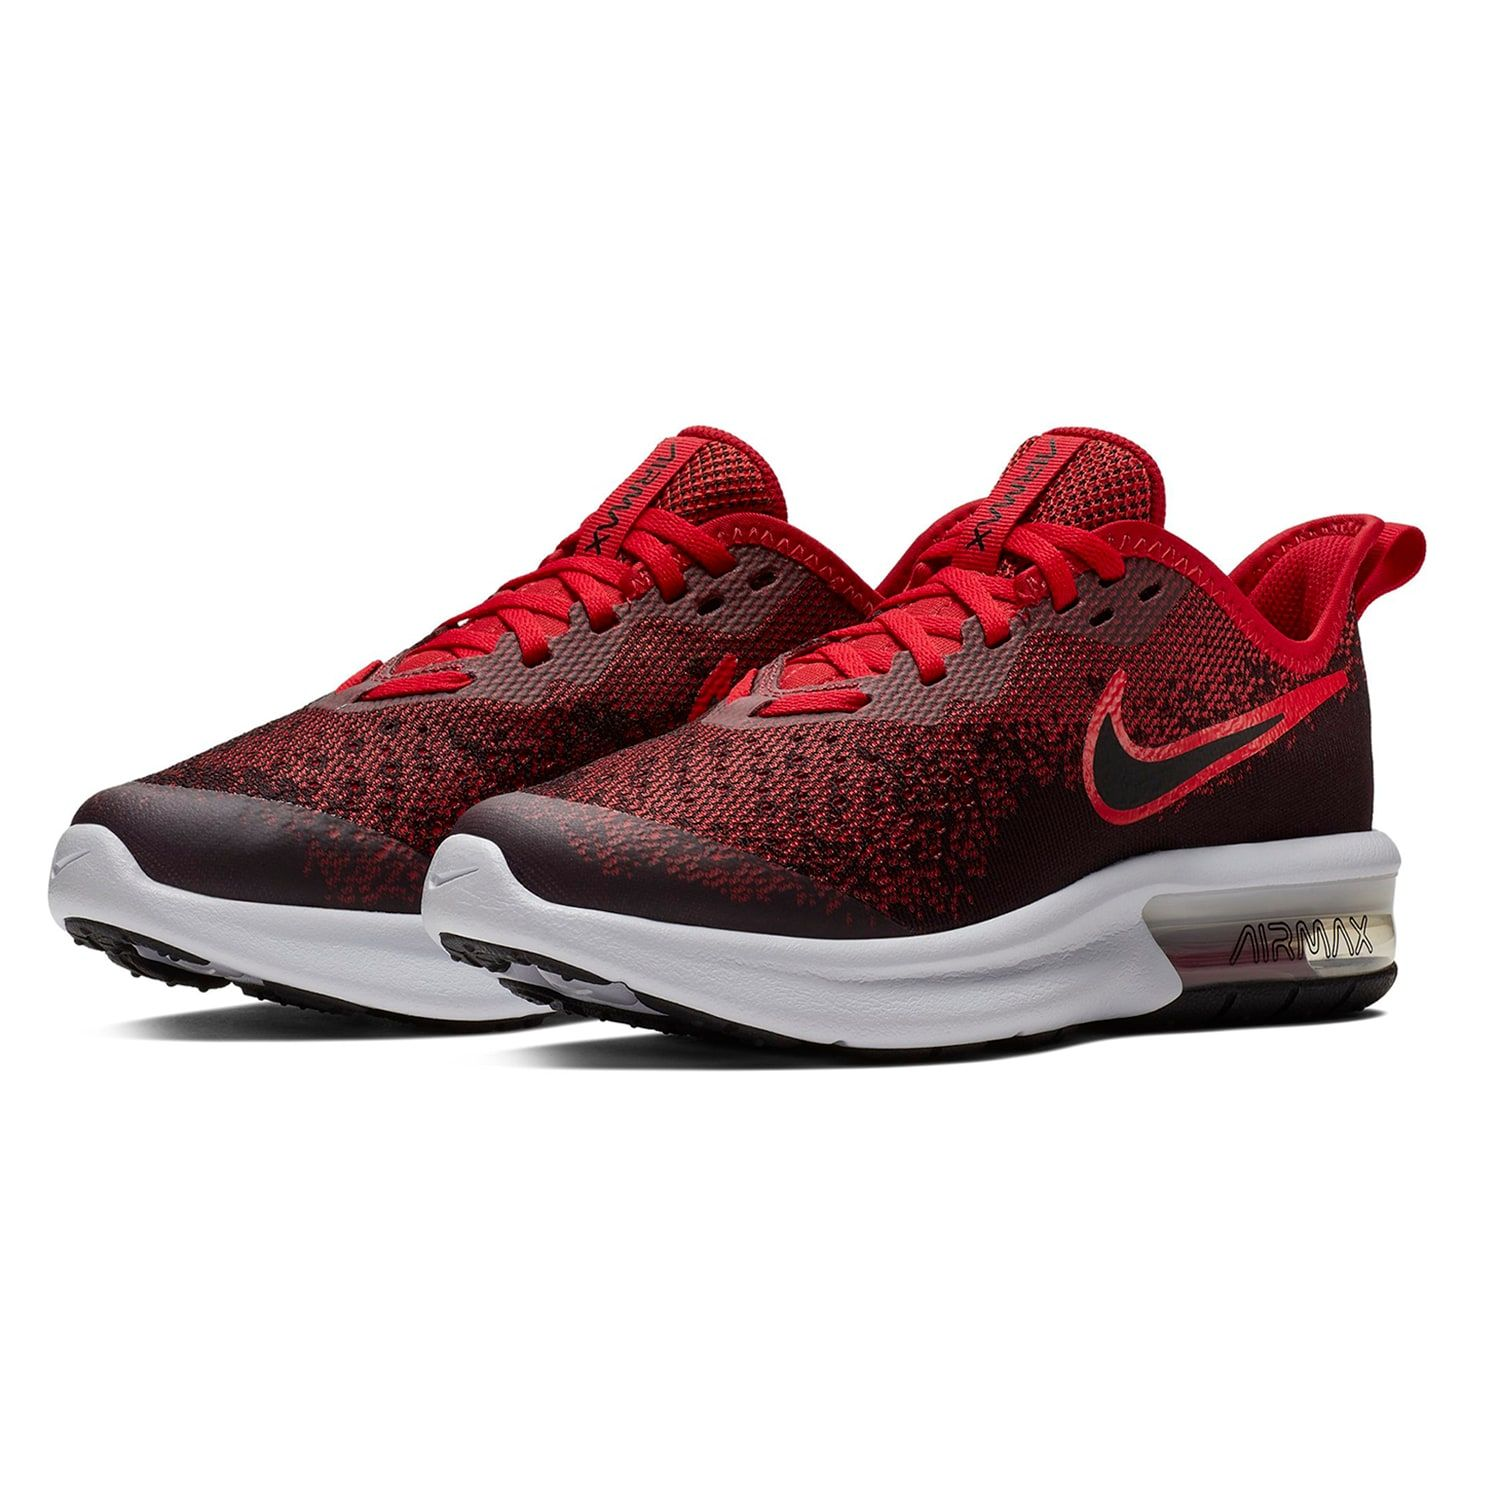 Nike Air Max Sequent 4 Grade School Boys' Sneakers #Max